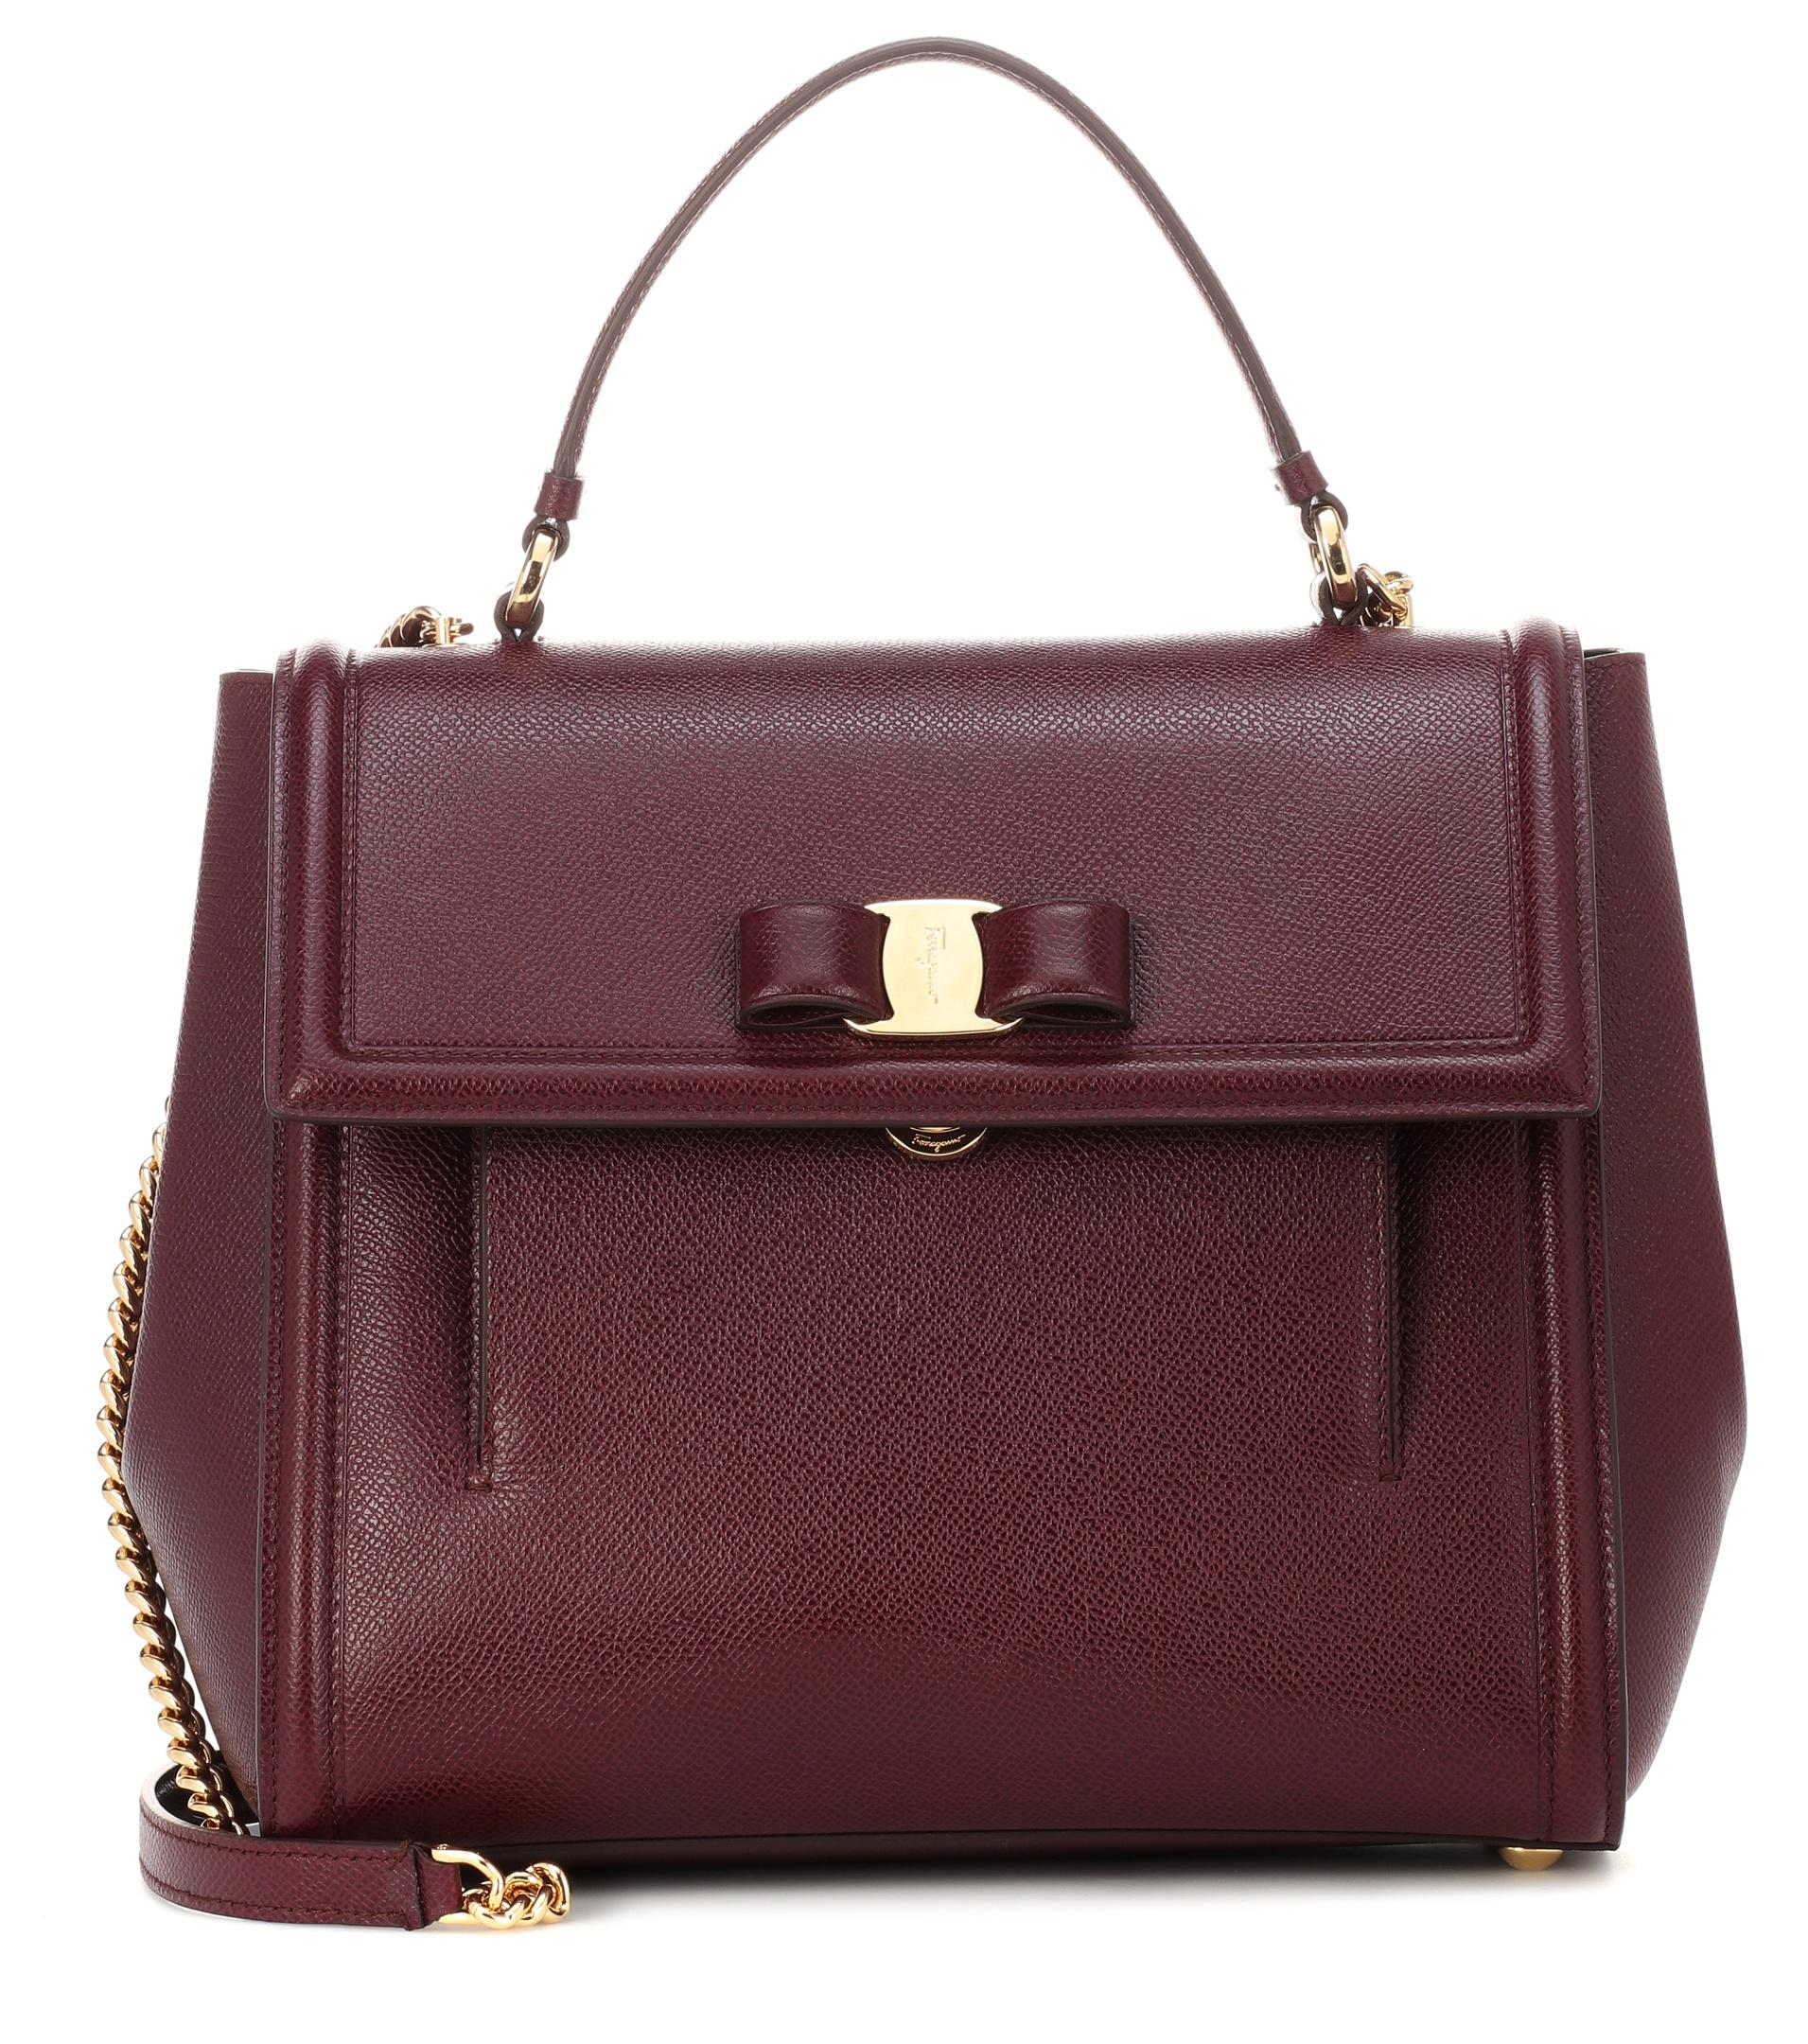 b6f93c2100 Ferragamo Carrie Leather Shoulder Bag in Purple - Lyst